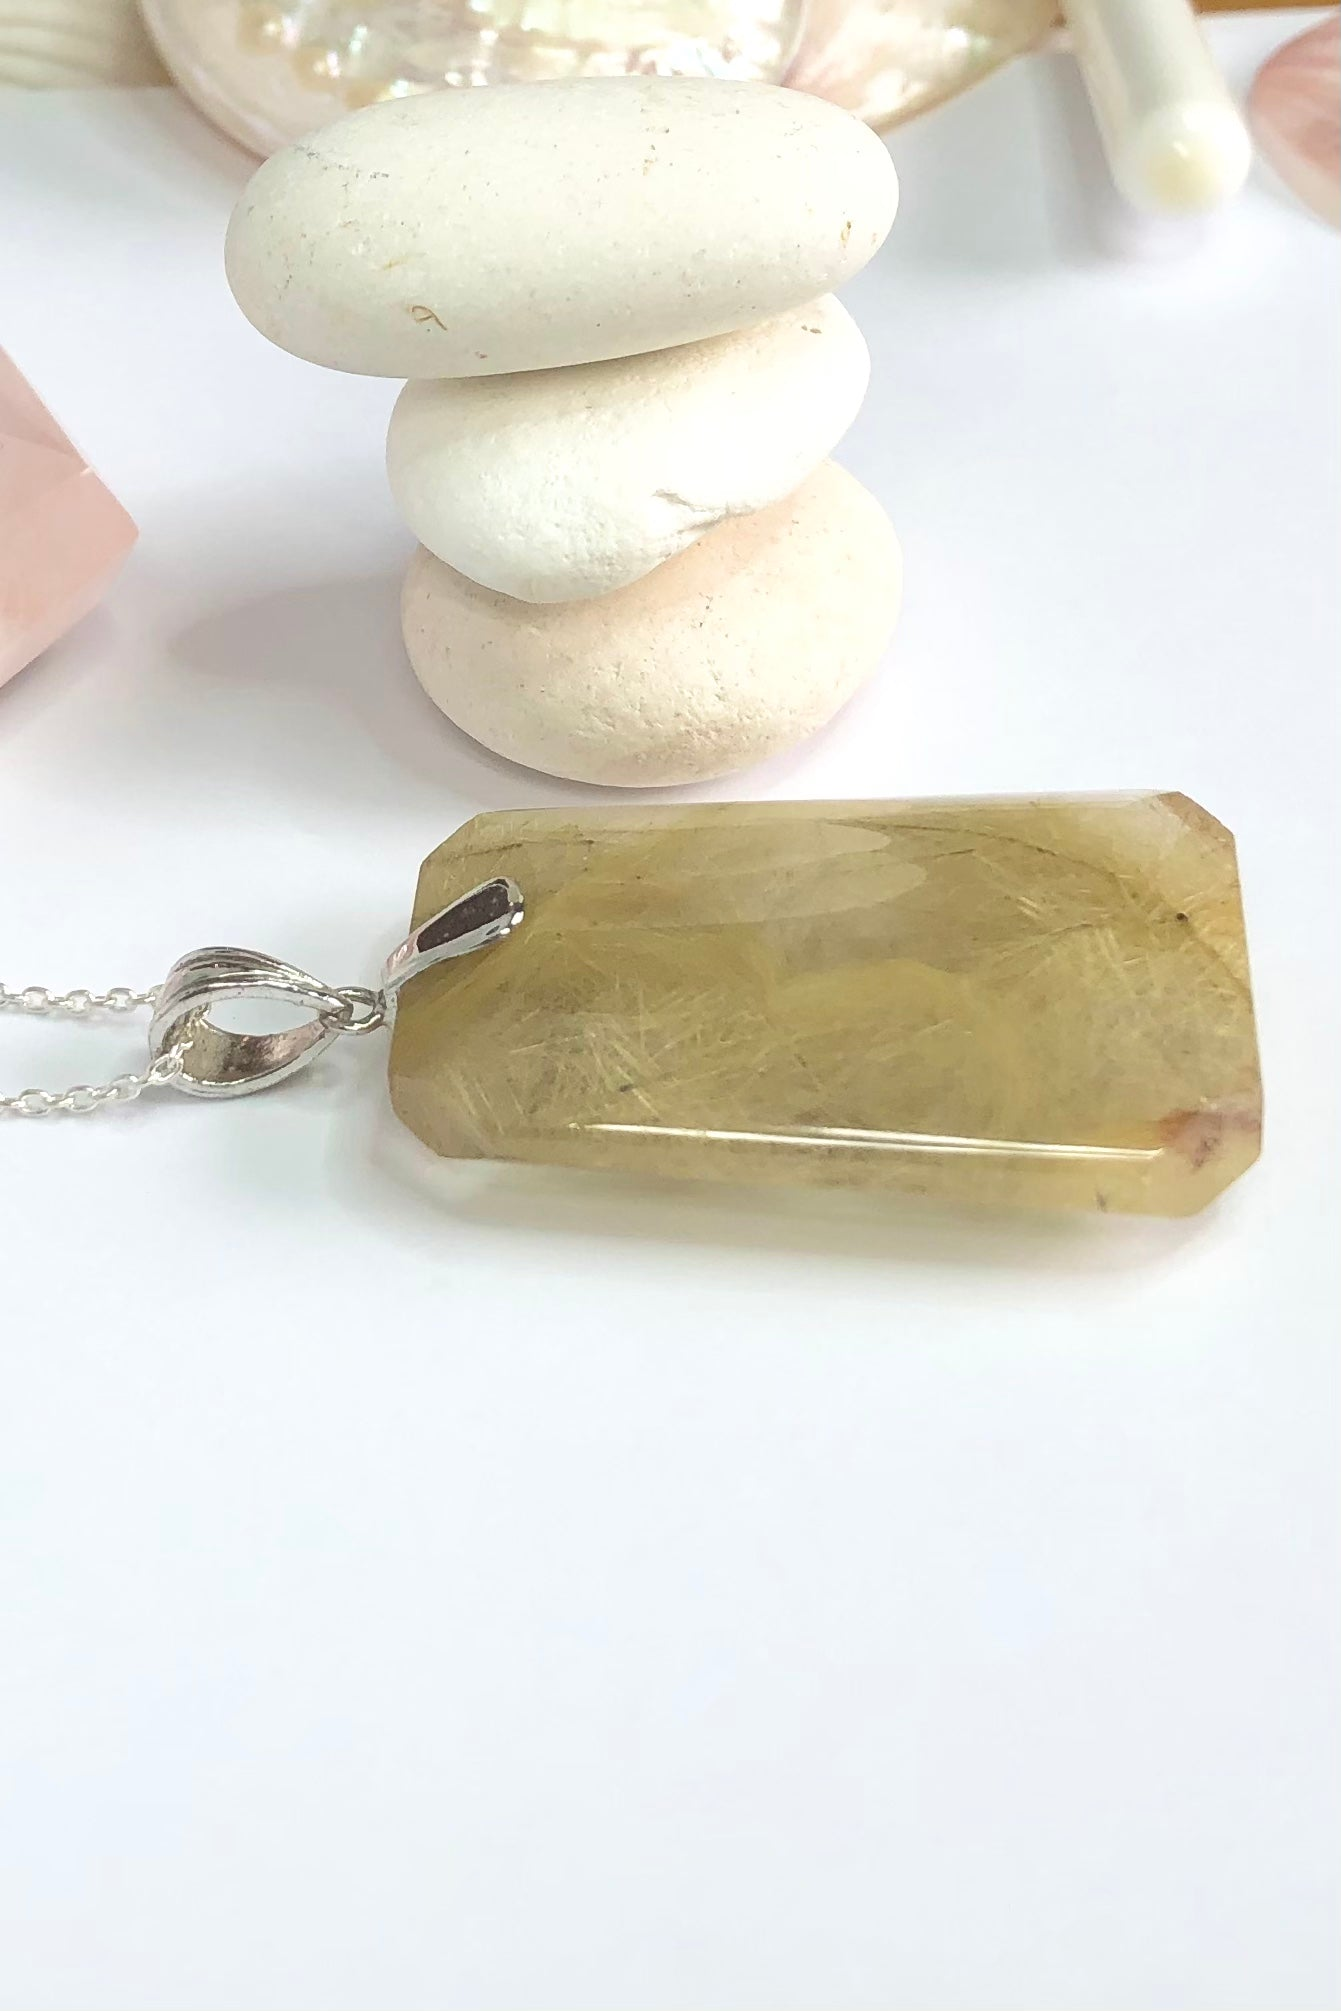 The Purity of a lovey natural crystal pendant polished to a high shine, this stone is cut into a strong angular shape with the Gold Rutile needles dense throughout.